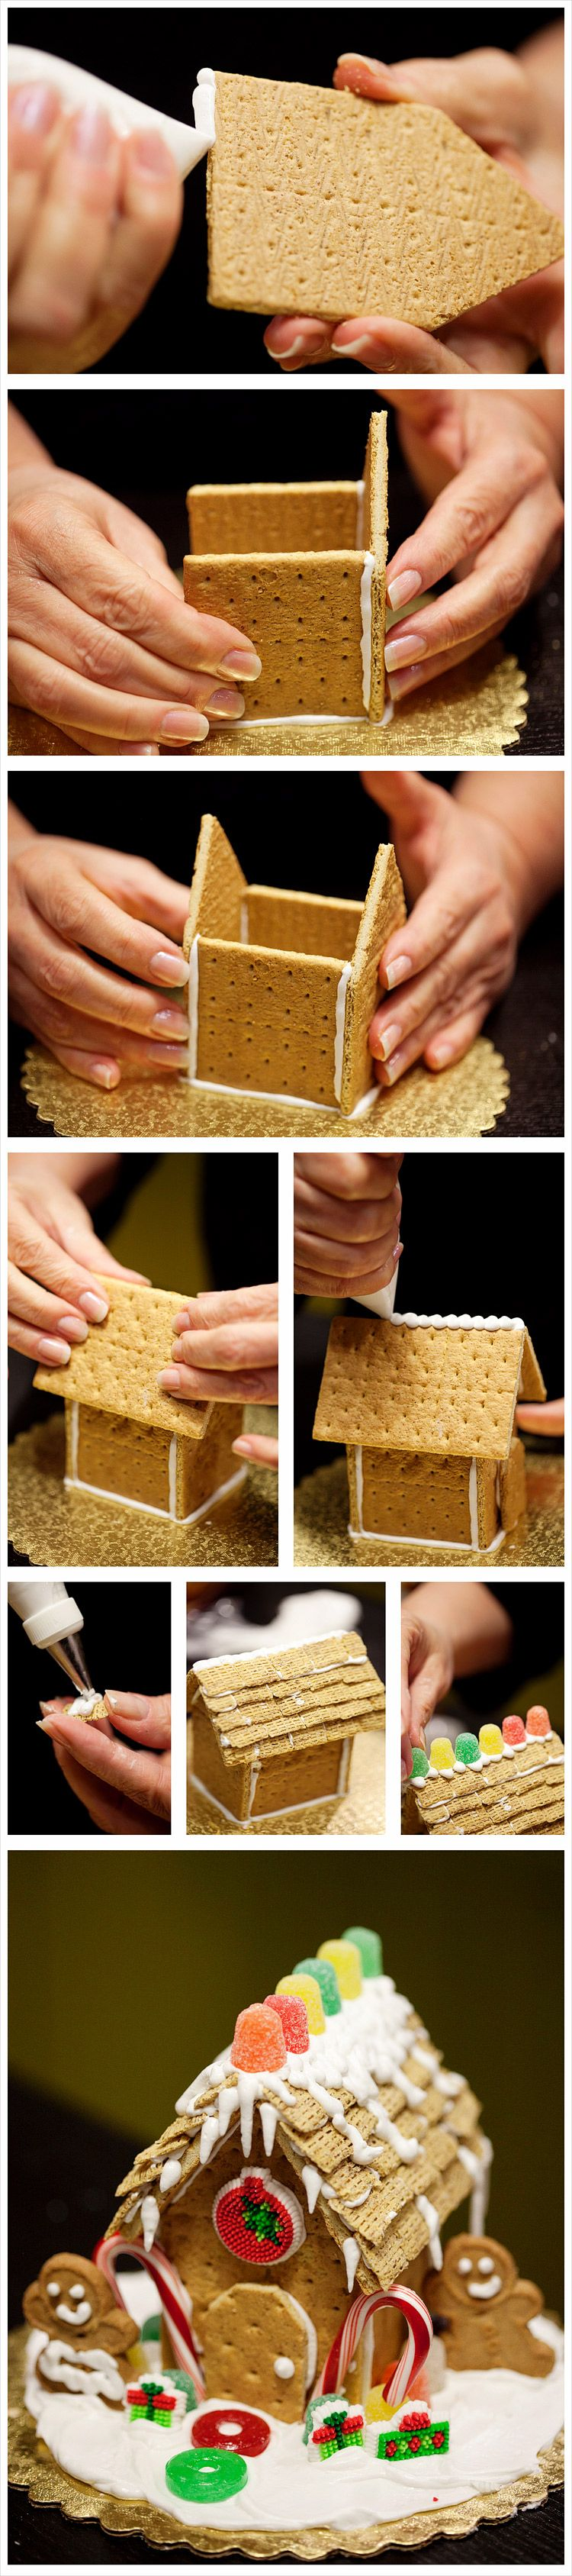 Mini Gingerbread Houses made out of Graham Crackers!  12 DIY Day's of Christmas: Day 3  kellymoorebag.com/blog